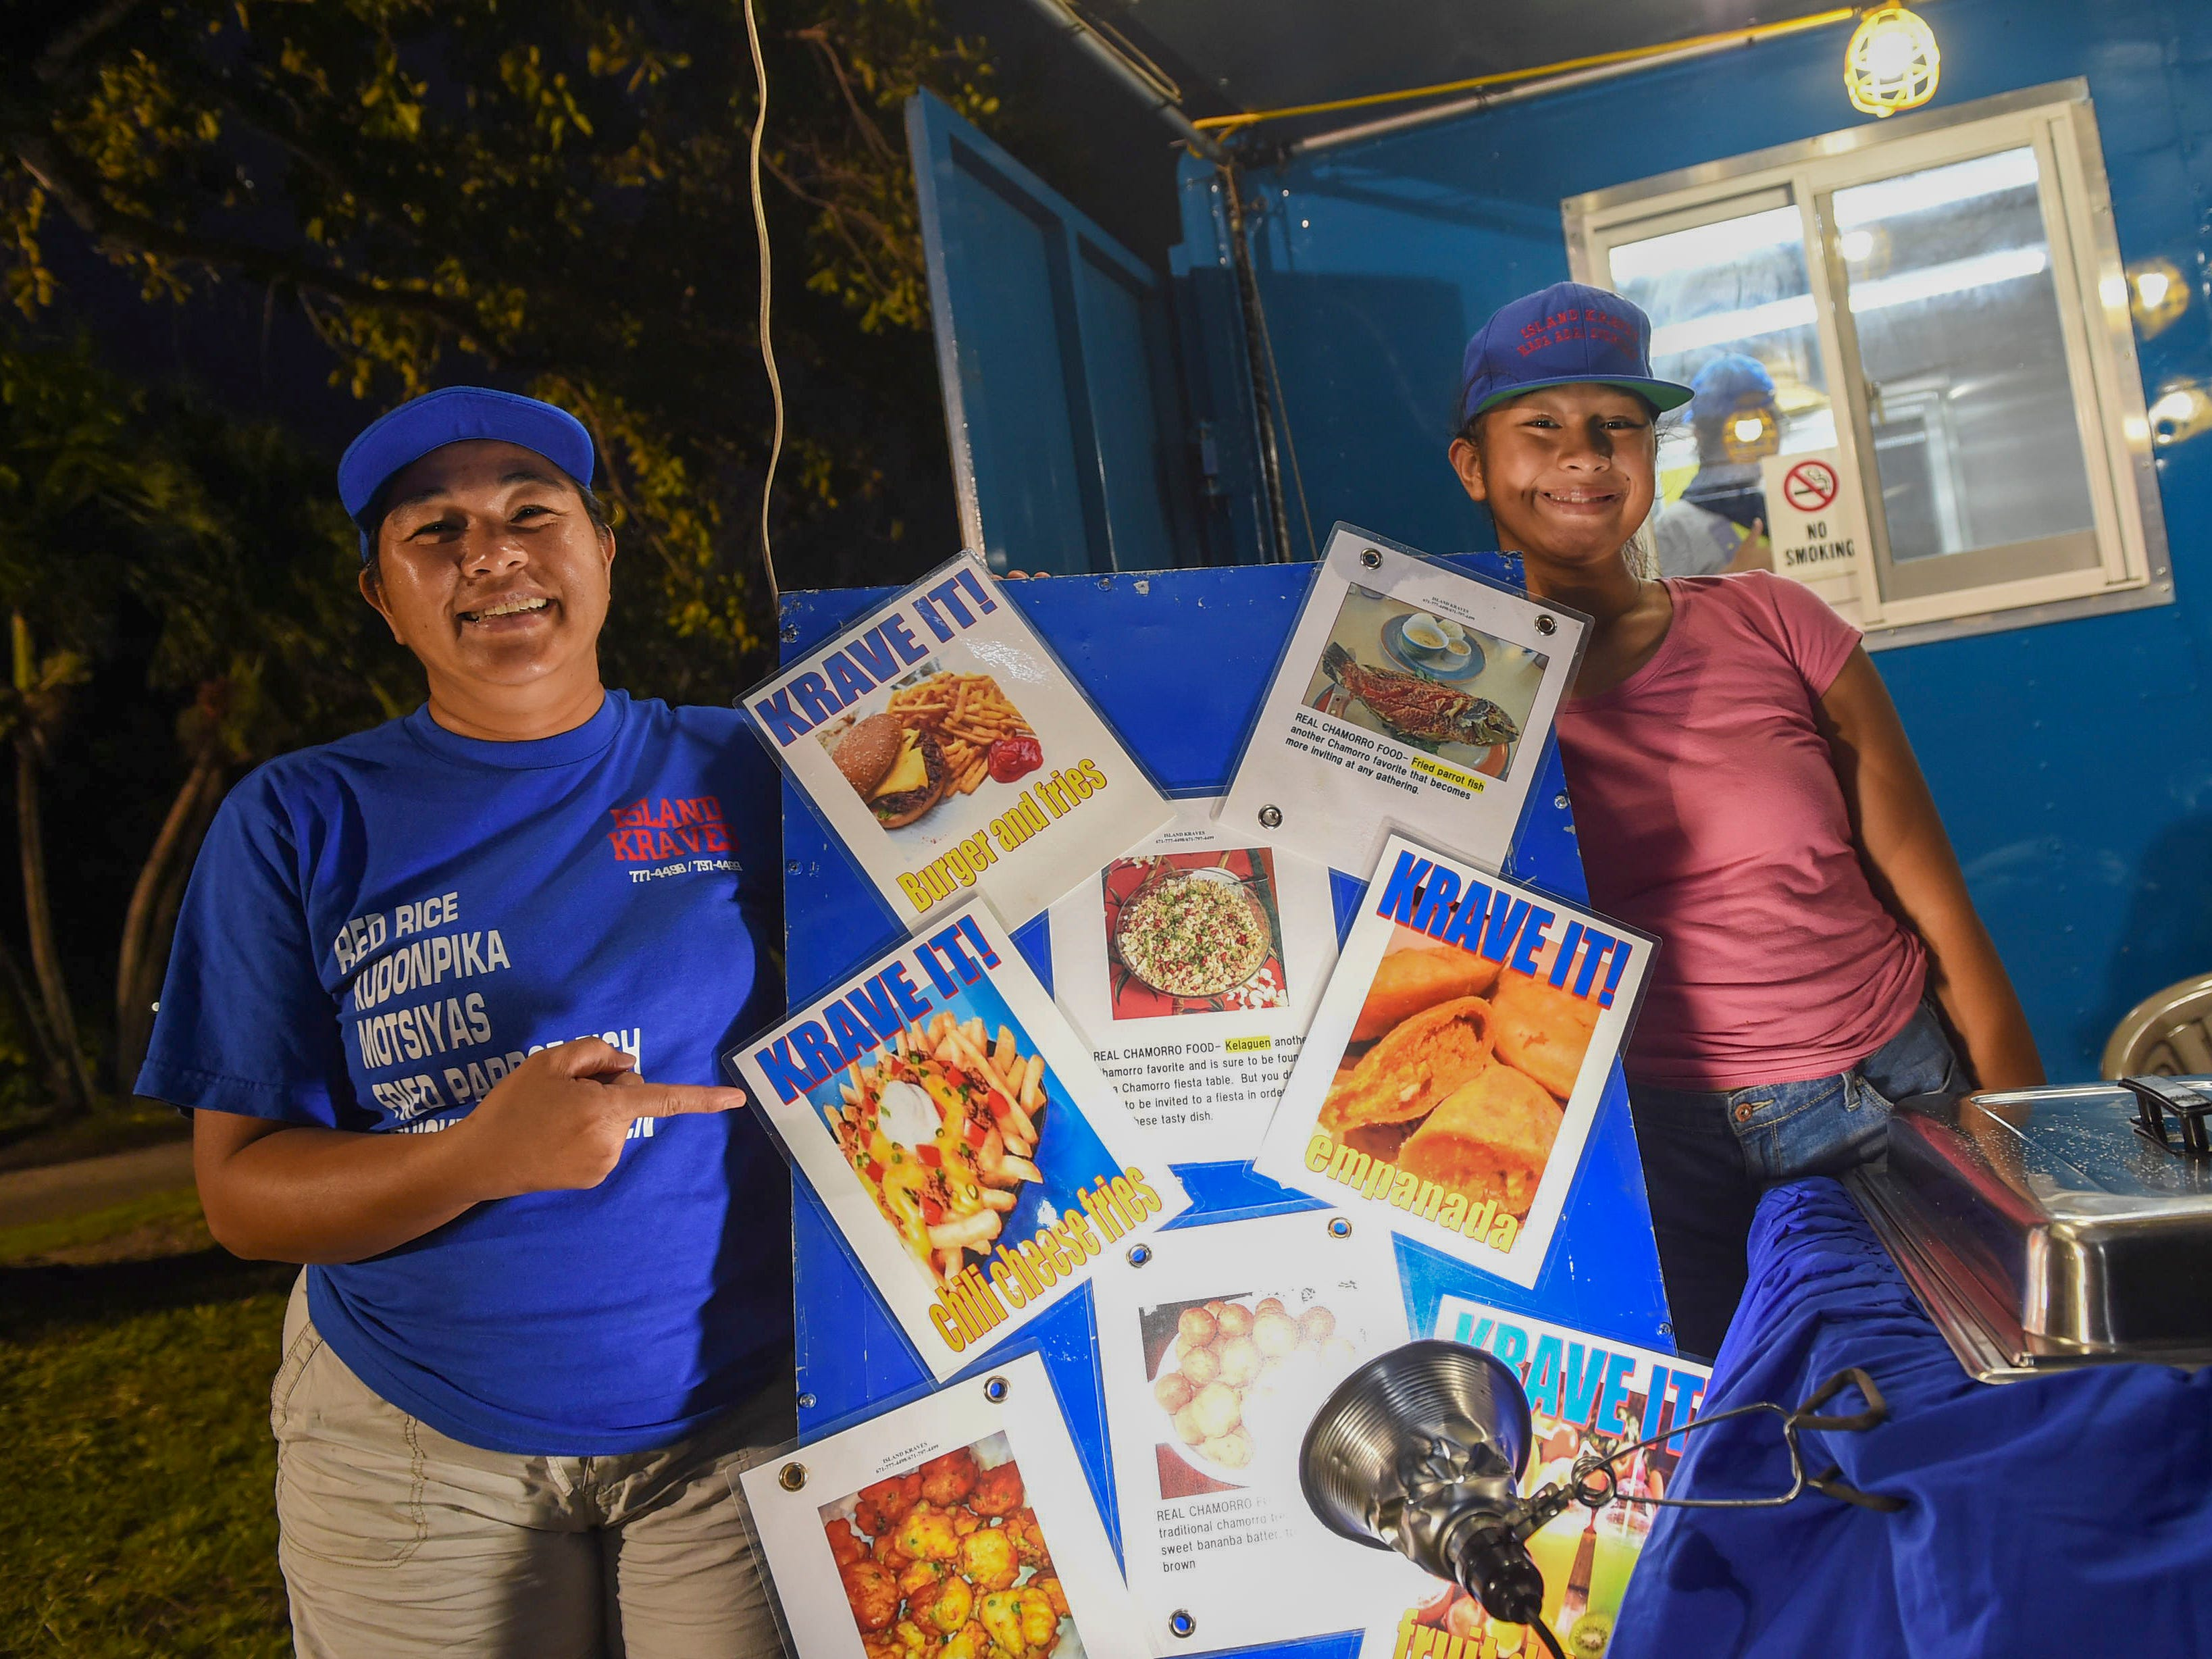 Island Kraves owner Therese Flores with her daughter Cherese at their local food truck during New Year's Eve at the Gov. Joseph Flores Beach Park on Dec. 31, 2018.